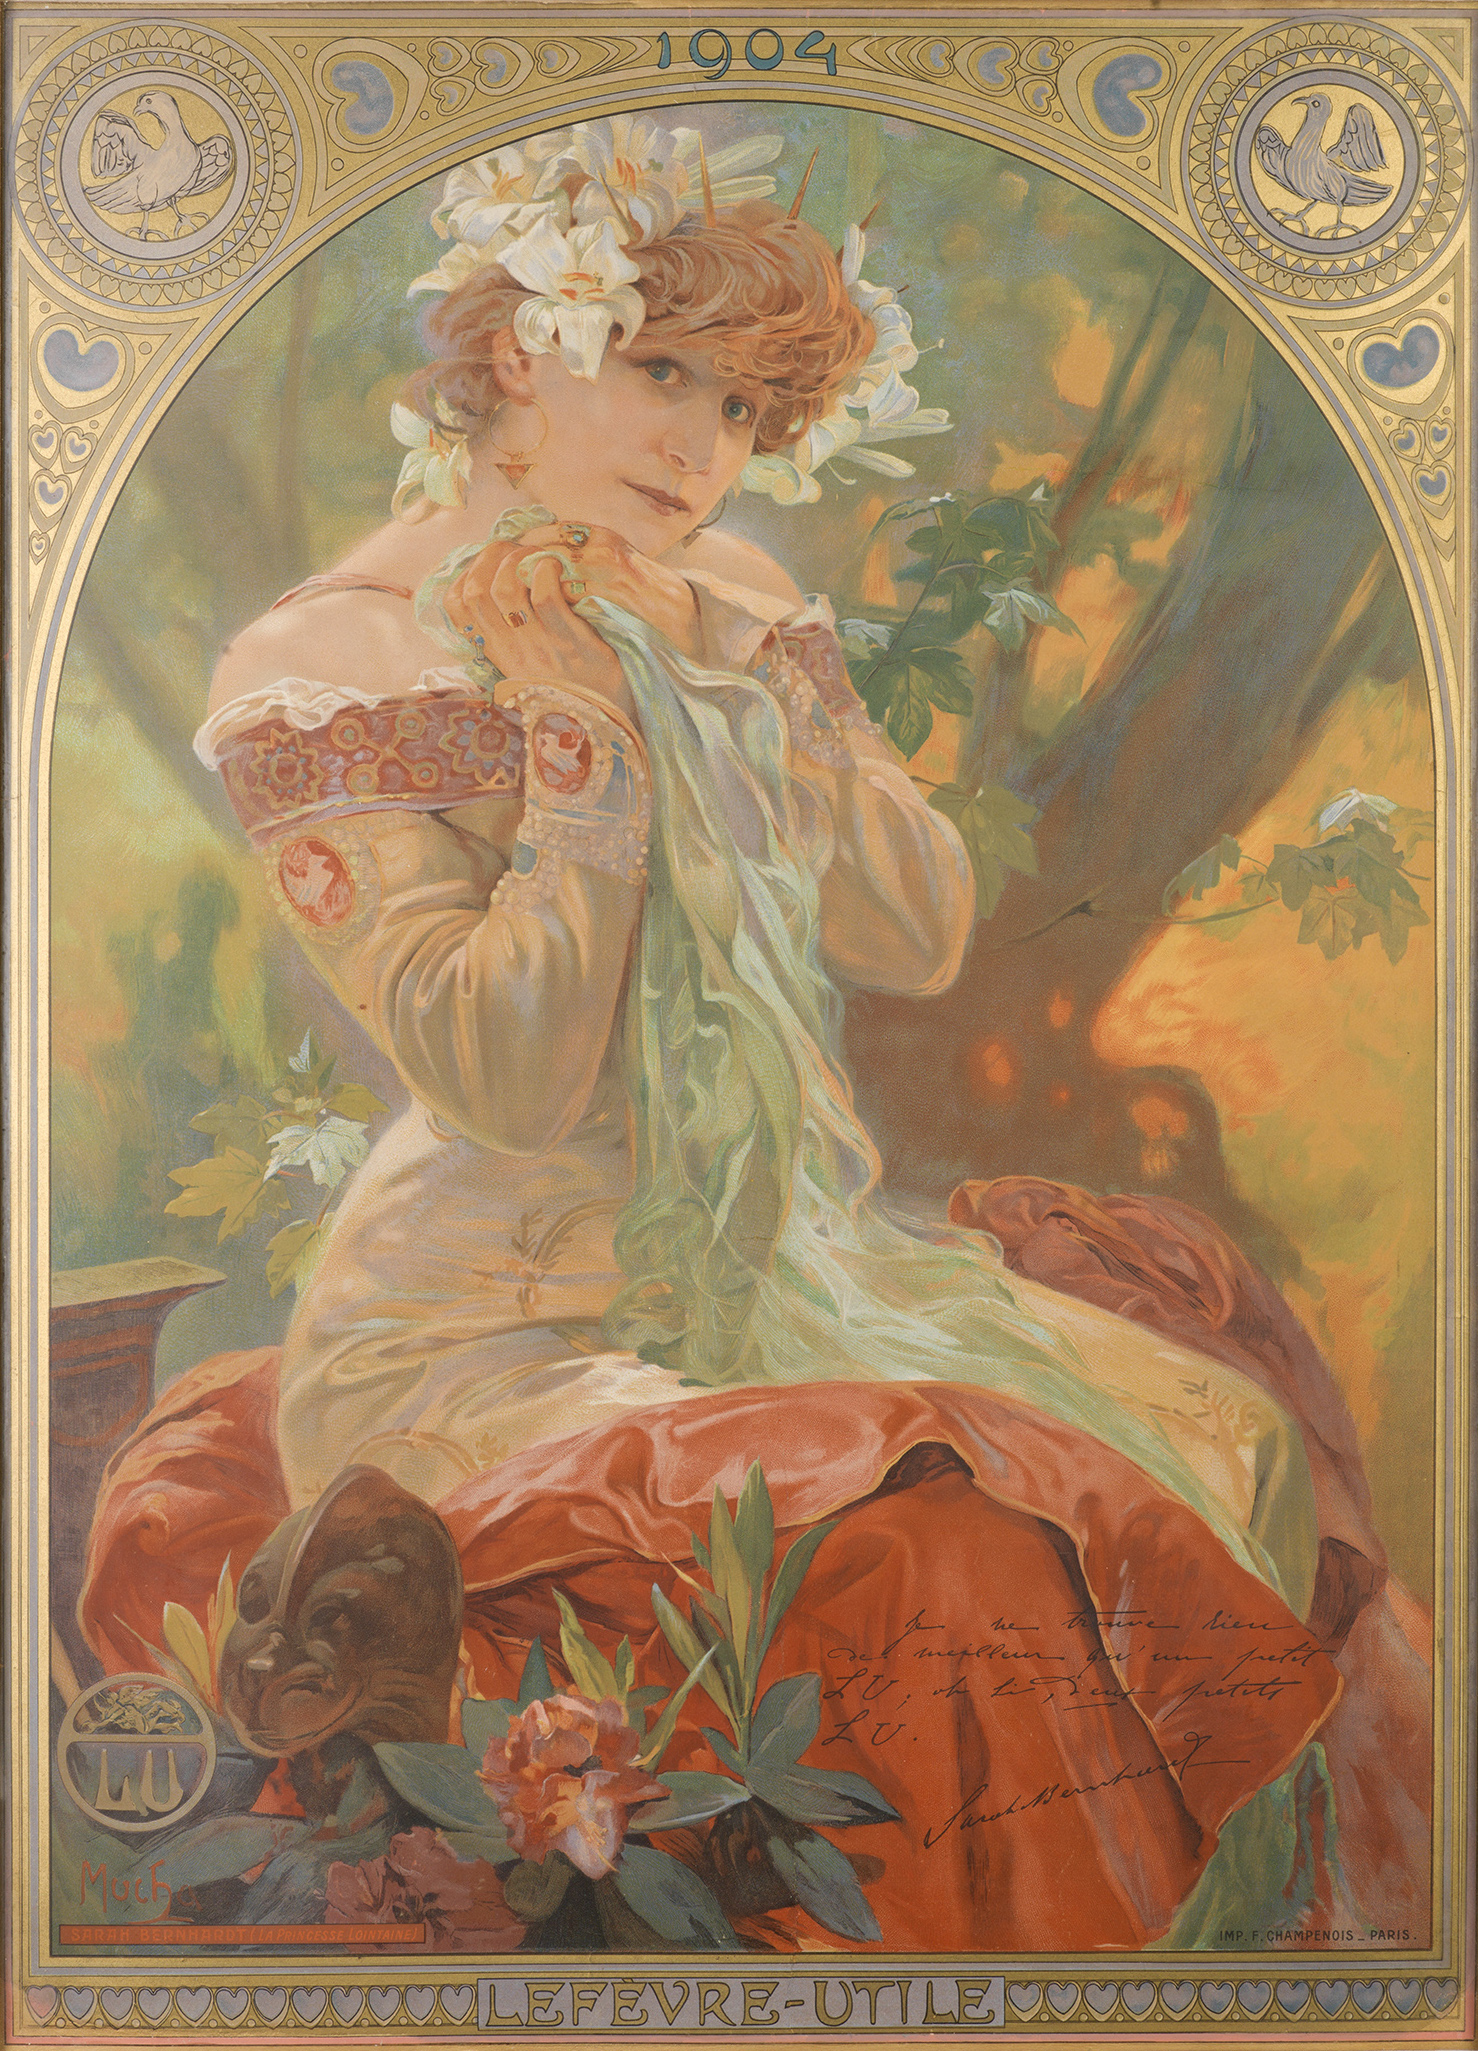 illustrational poster of a woman wearing a dress and flowers in her hair sitting in nature